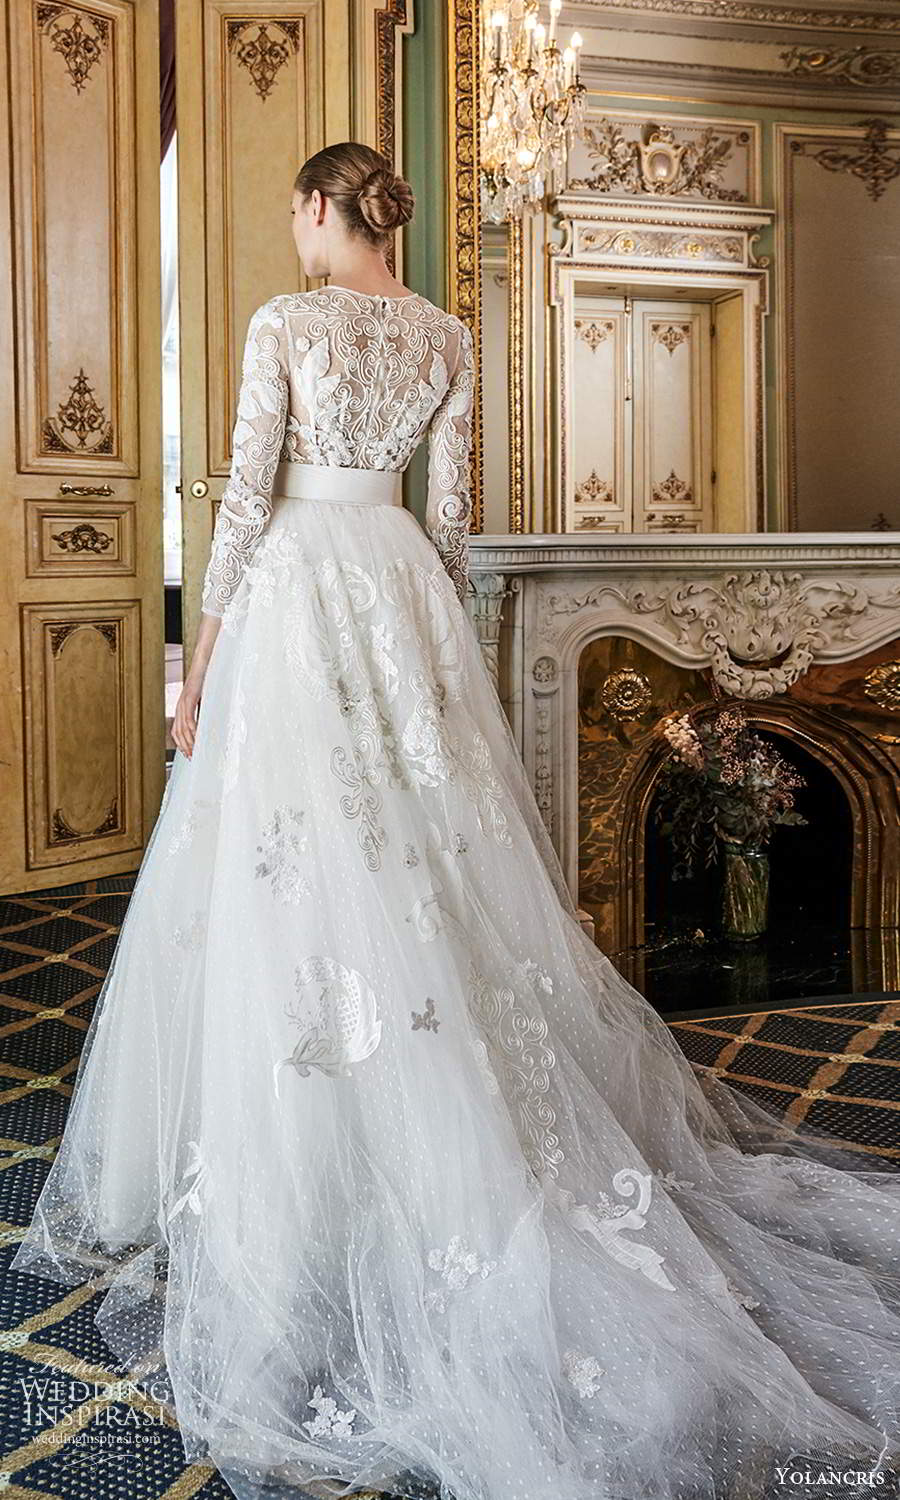 yolancris 2020 bridal couture 3 quarter sleeves jewel neckline fully embellished knee length sheath shift wedding dress a line ball gown overskirt belt chapel train (3) bv